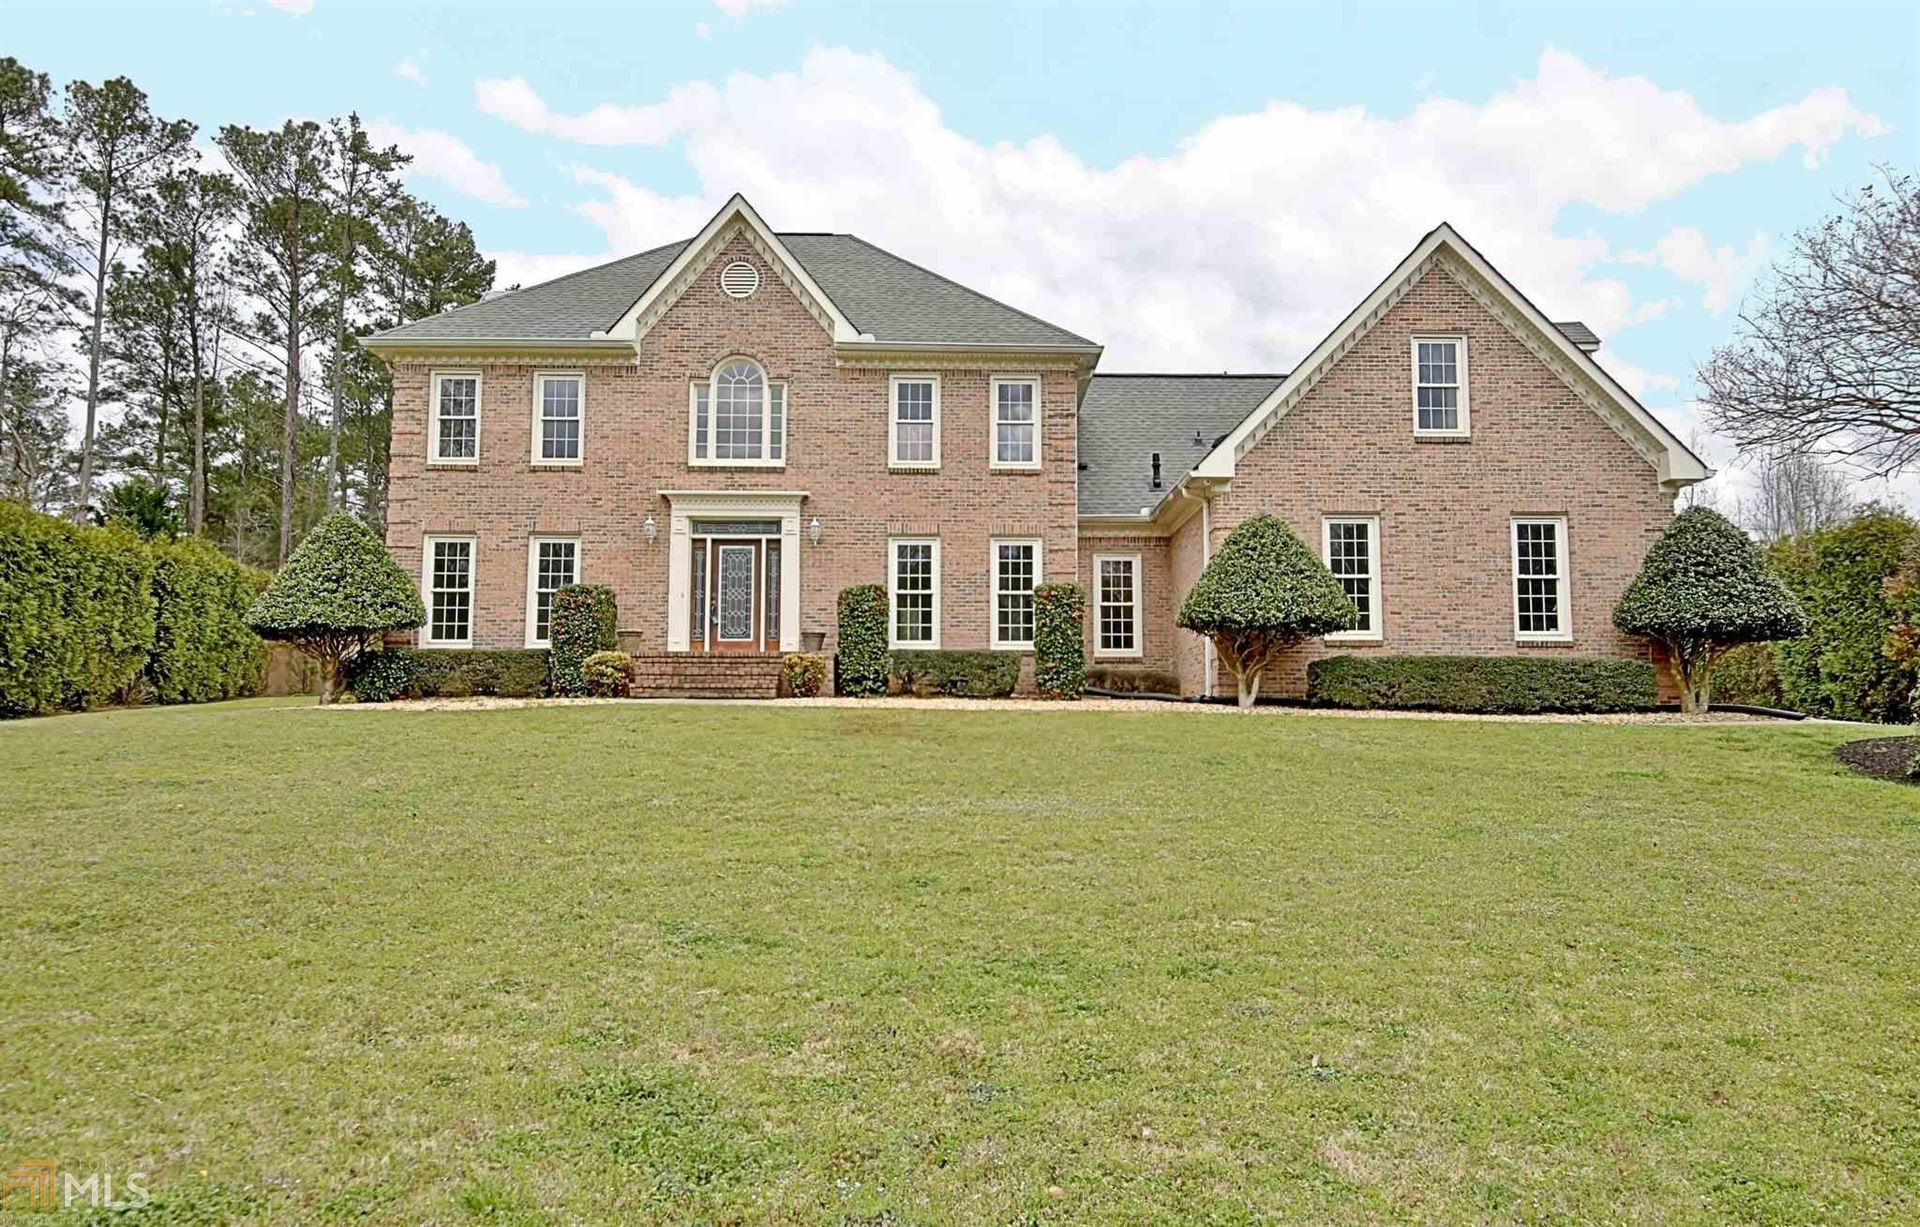 165 Old South Ct, Fayetteville, GA 30215 - #: 8947202